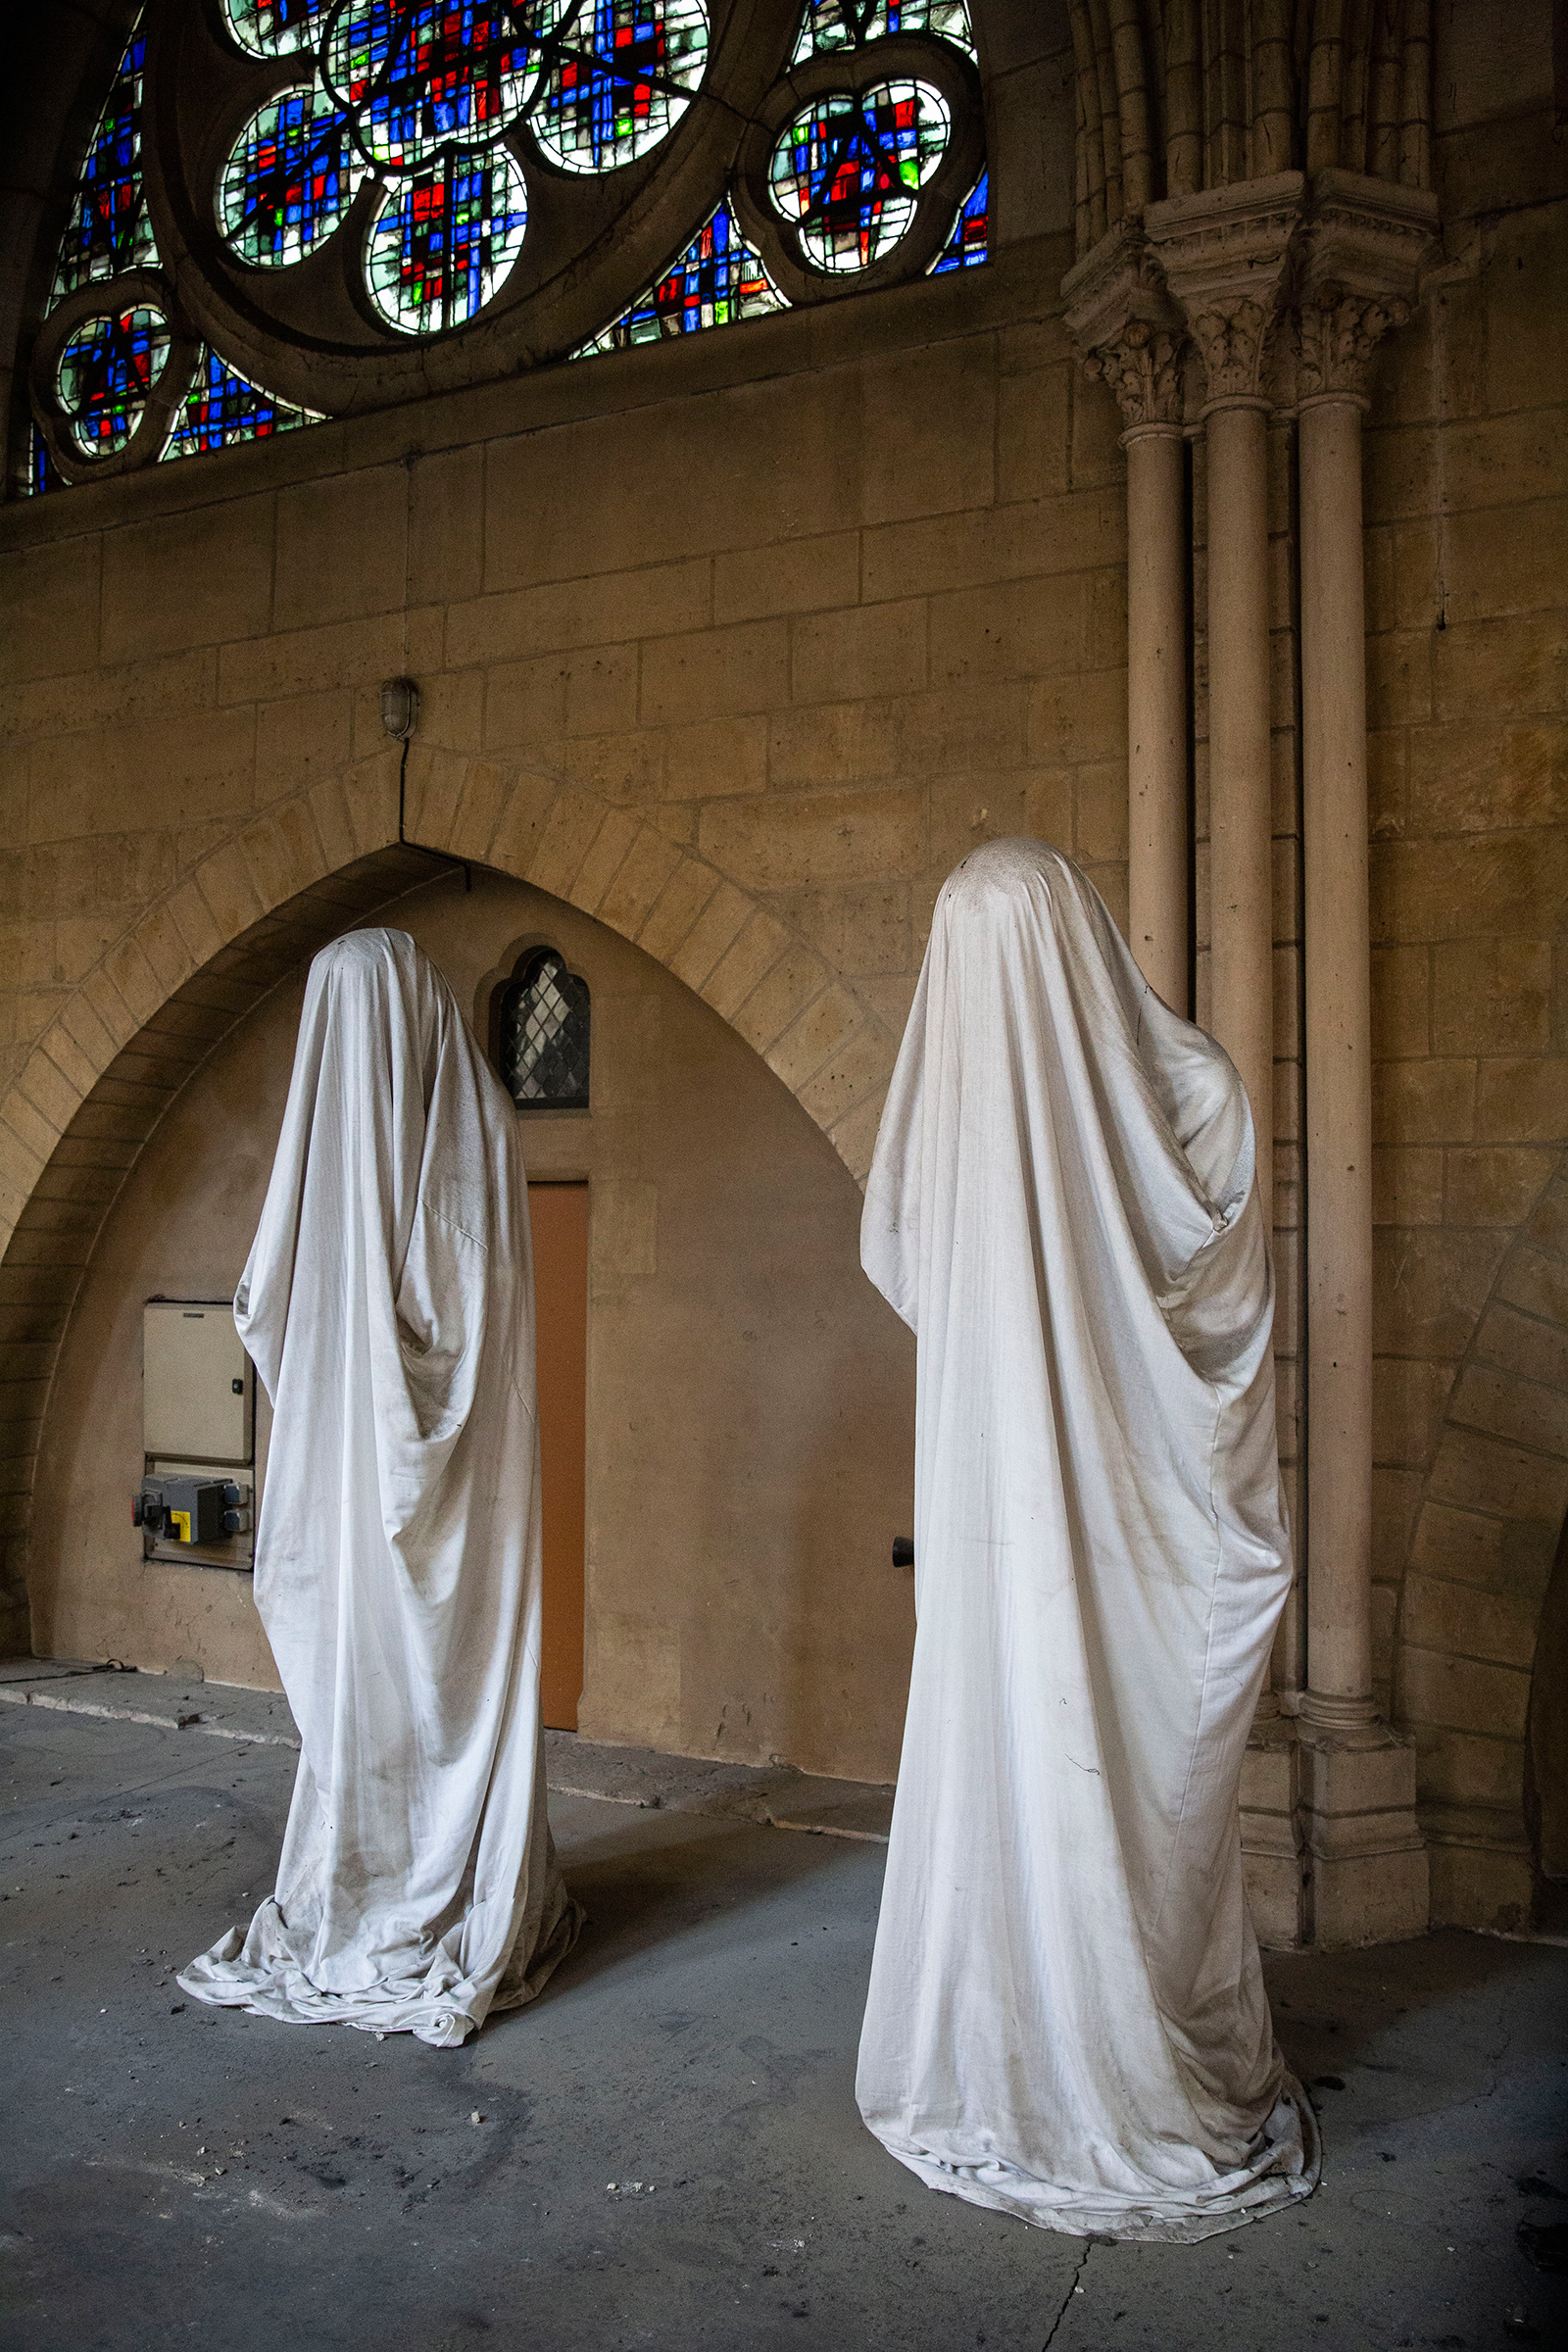 Two statues covered in cloth rest inside the cathedral.